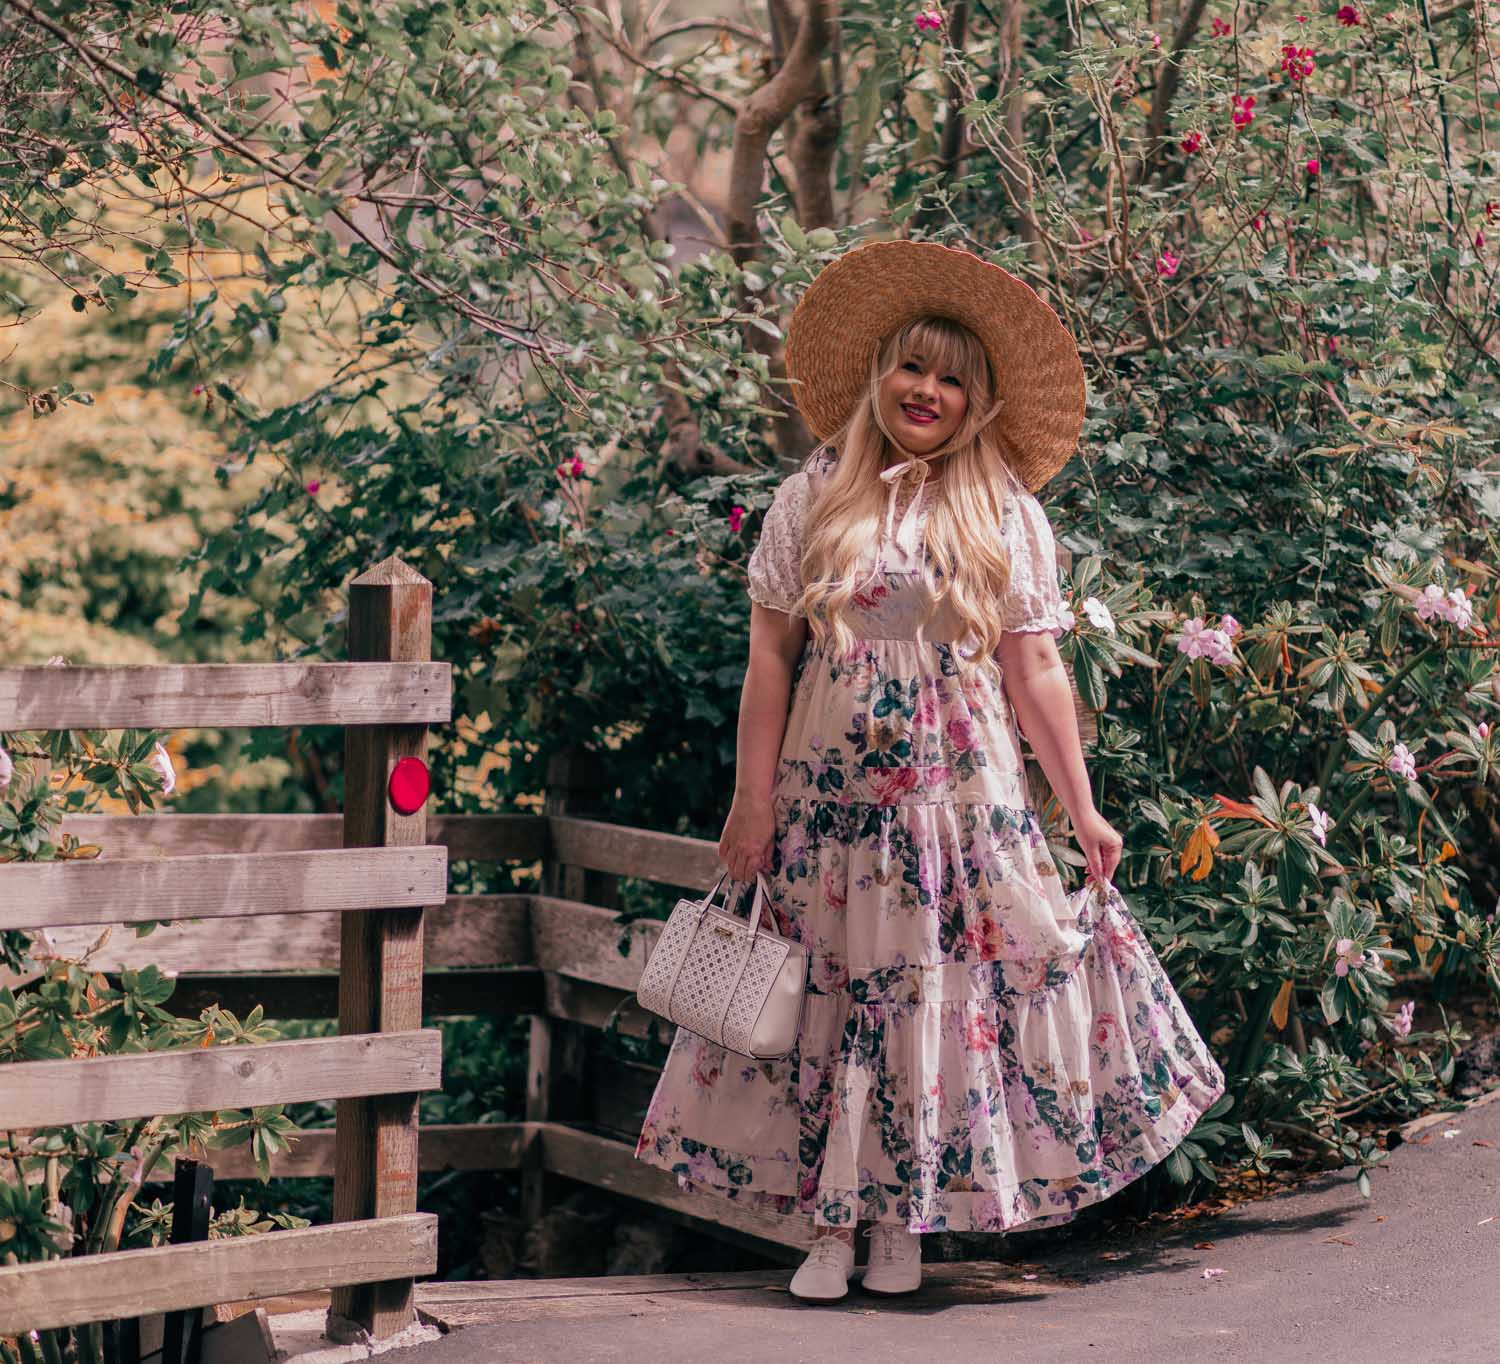 Feminine Fashion Blogger Elizabeth Hugen of Lizzie in Lace shares How to Create a Cottagecore Aesthetic Outfit featuring a floral chicwish maxi dress and lack of color hat